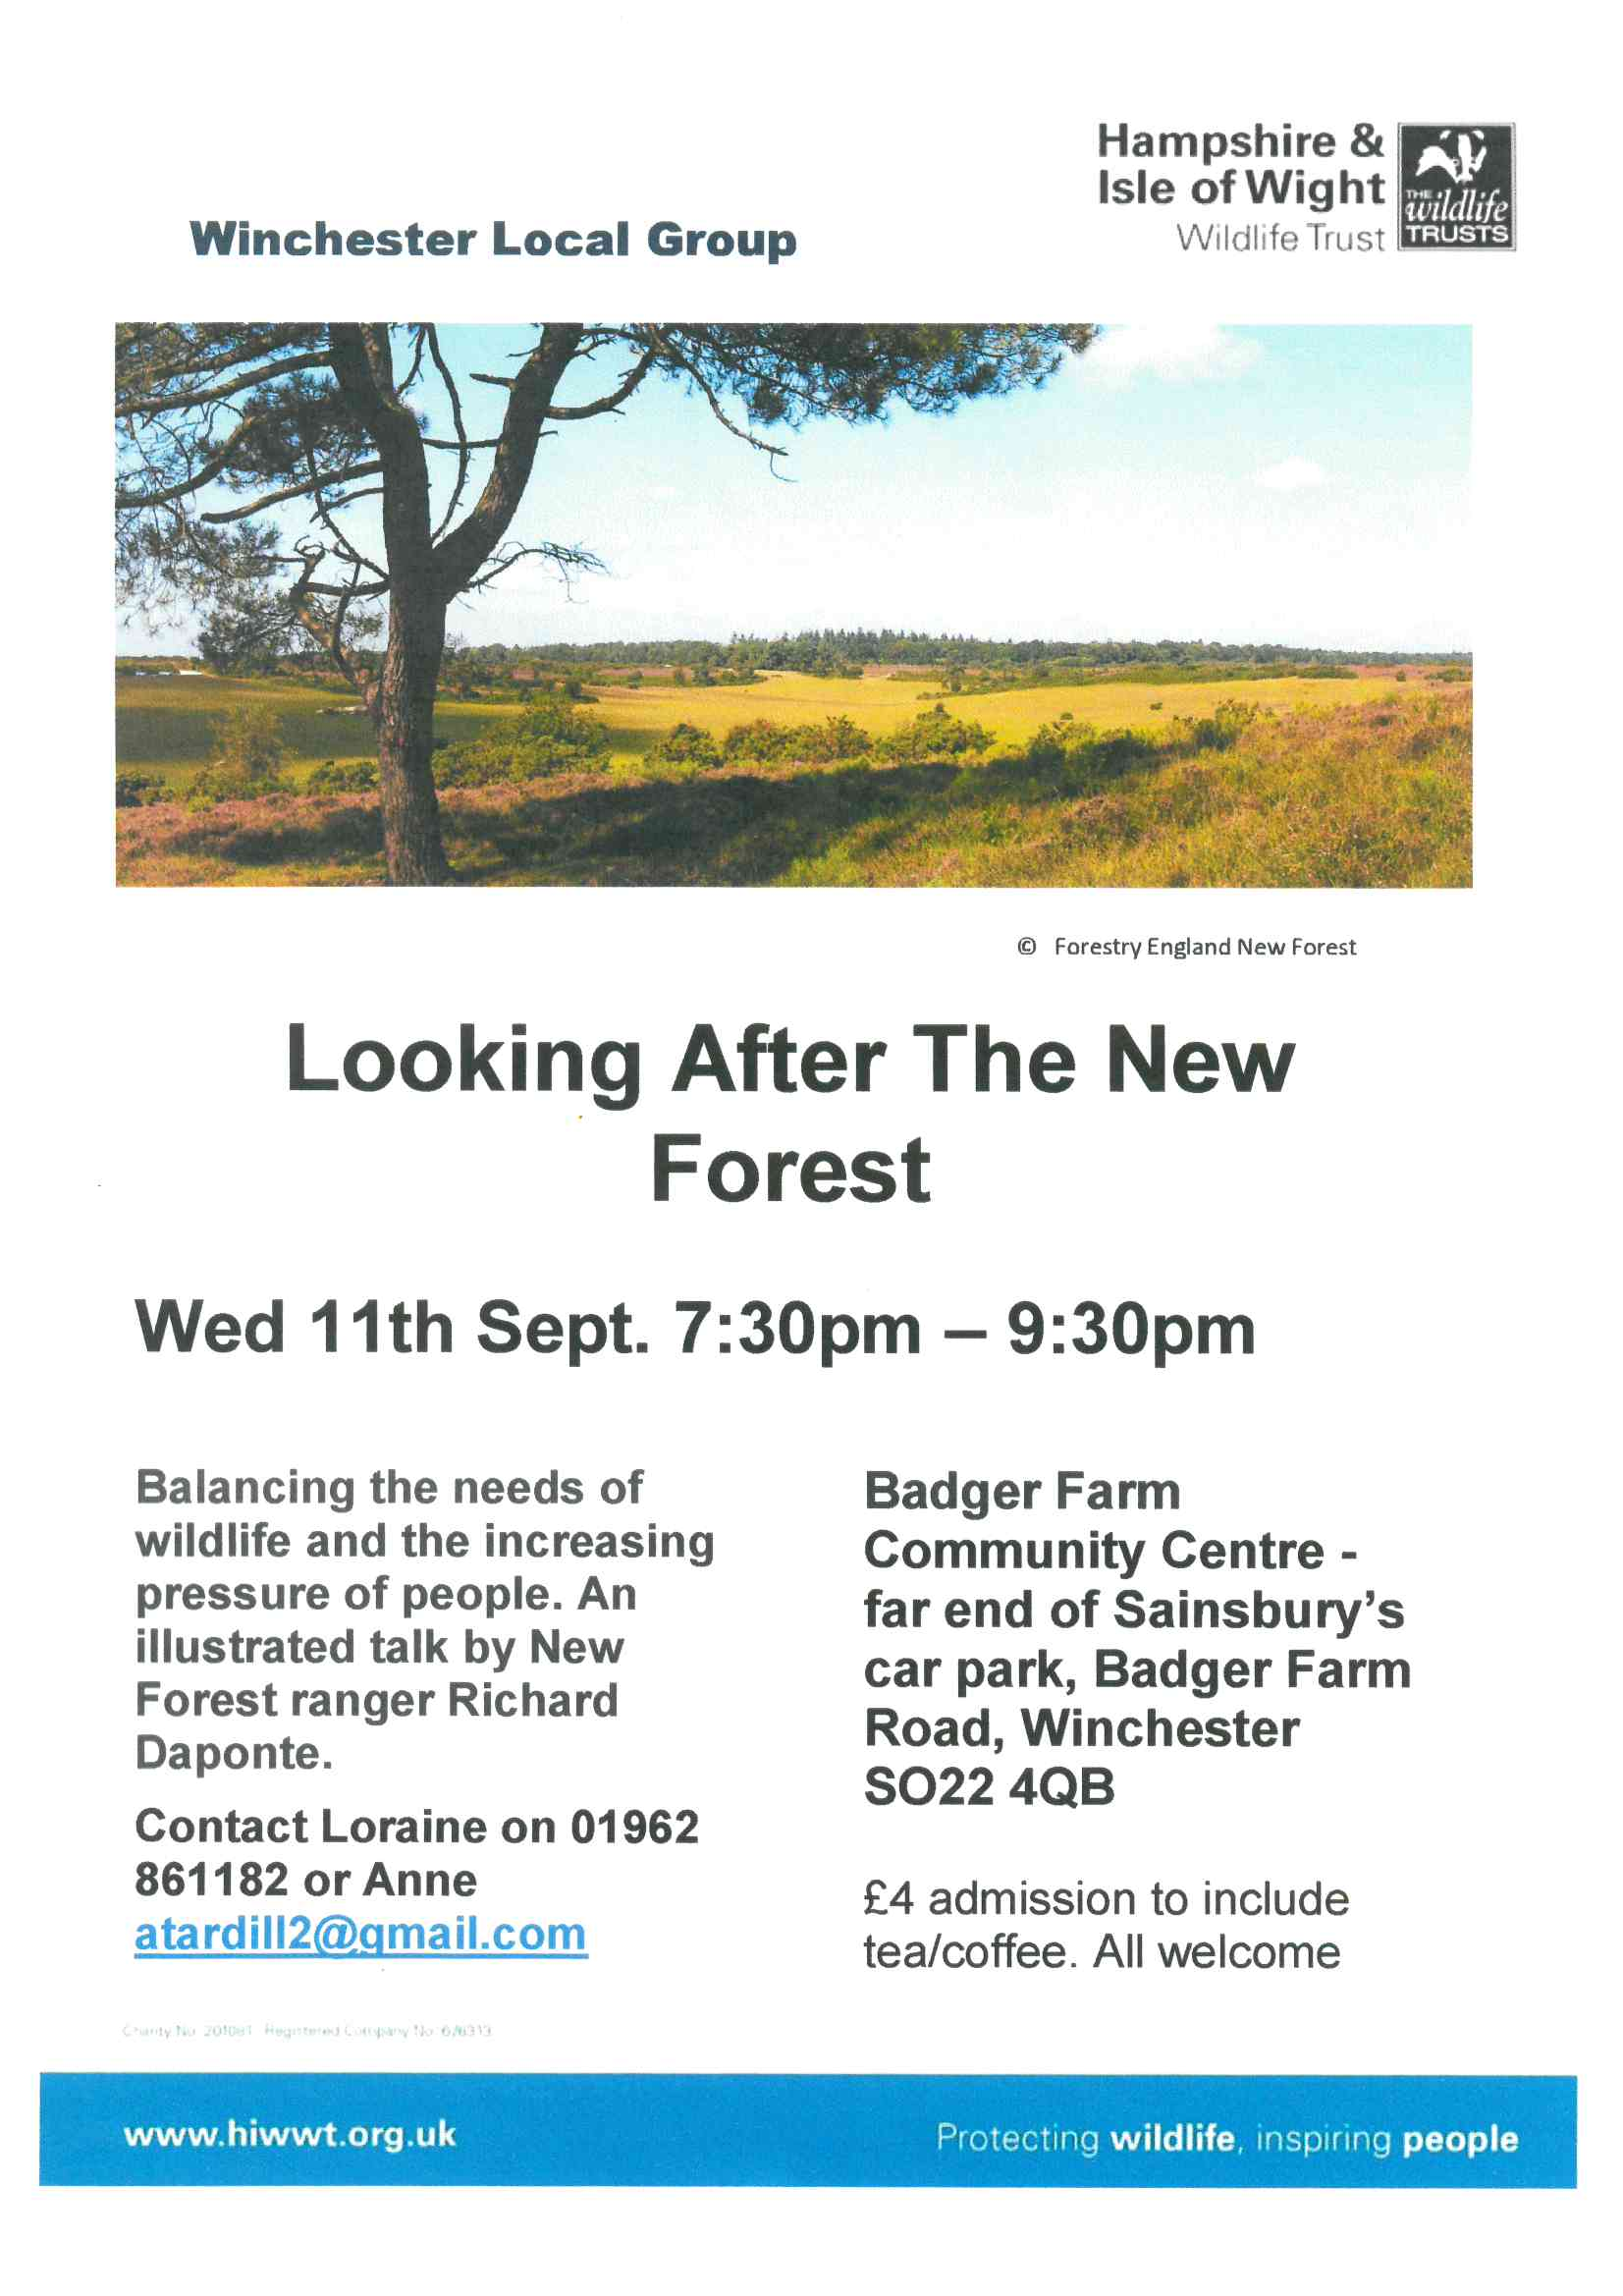 Poster giving full details of a talk at Hampshire Wildlife Trust next meeting on 11 September at Badger Farm.